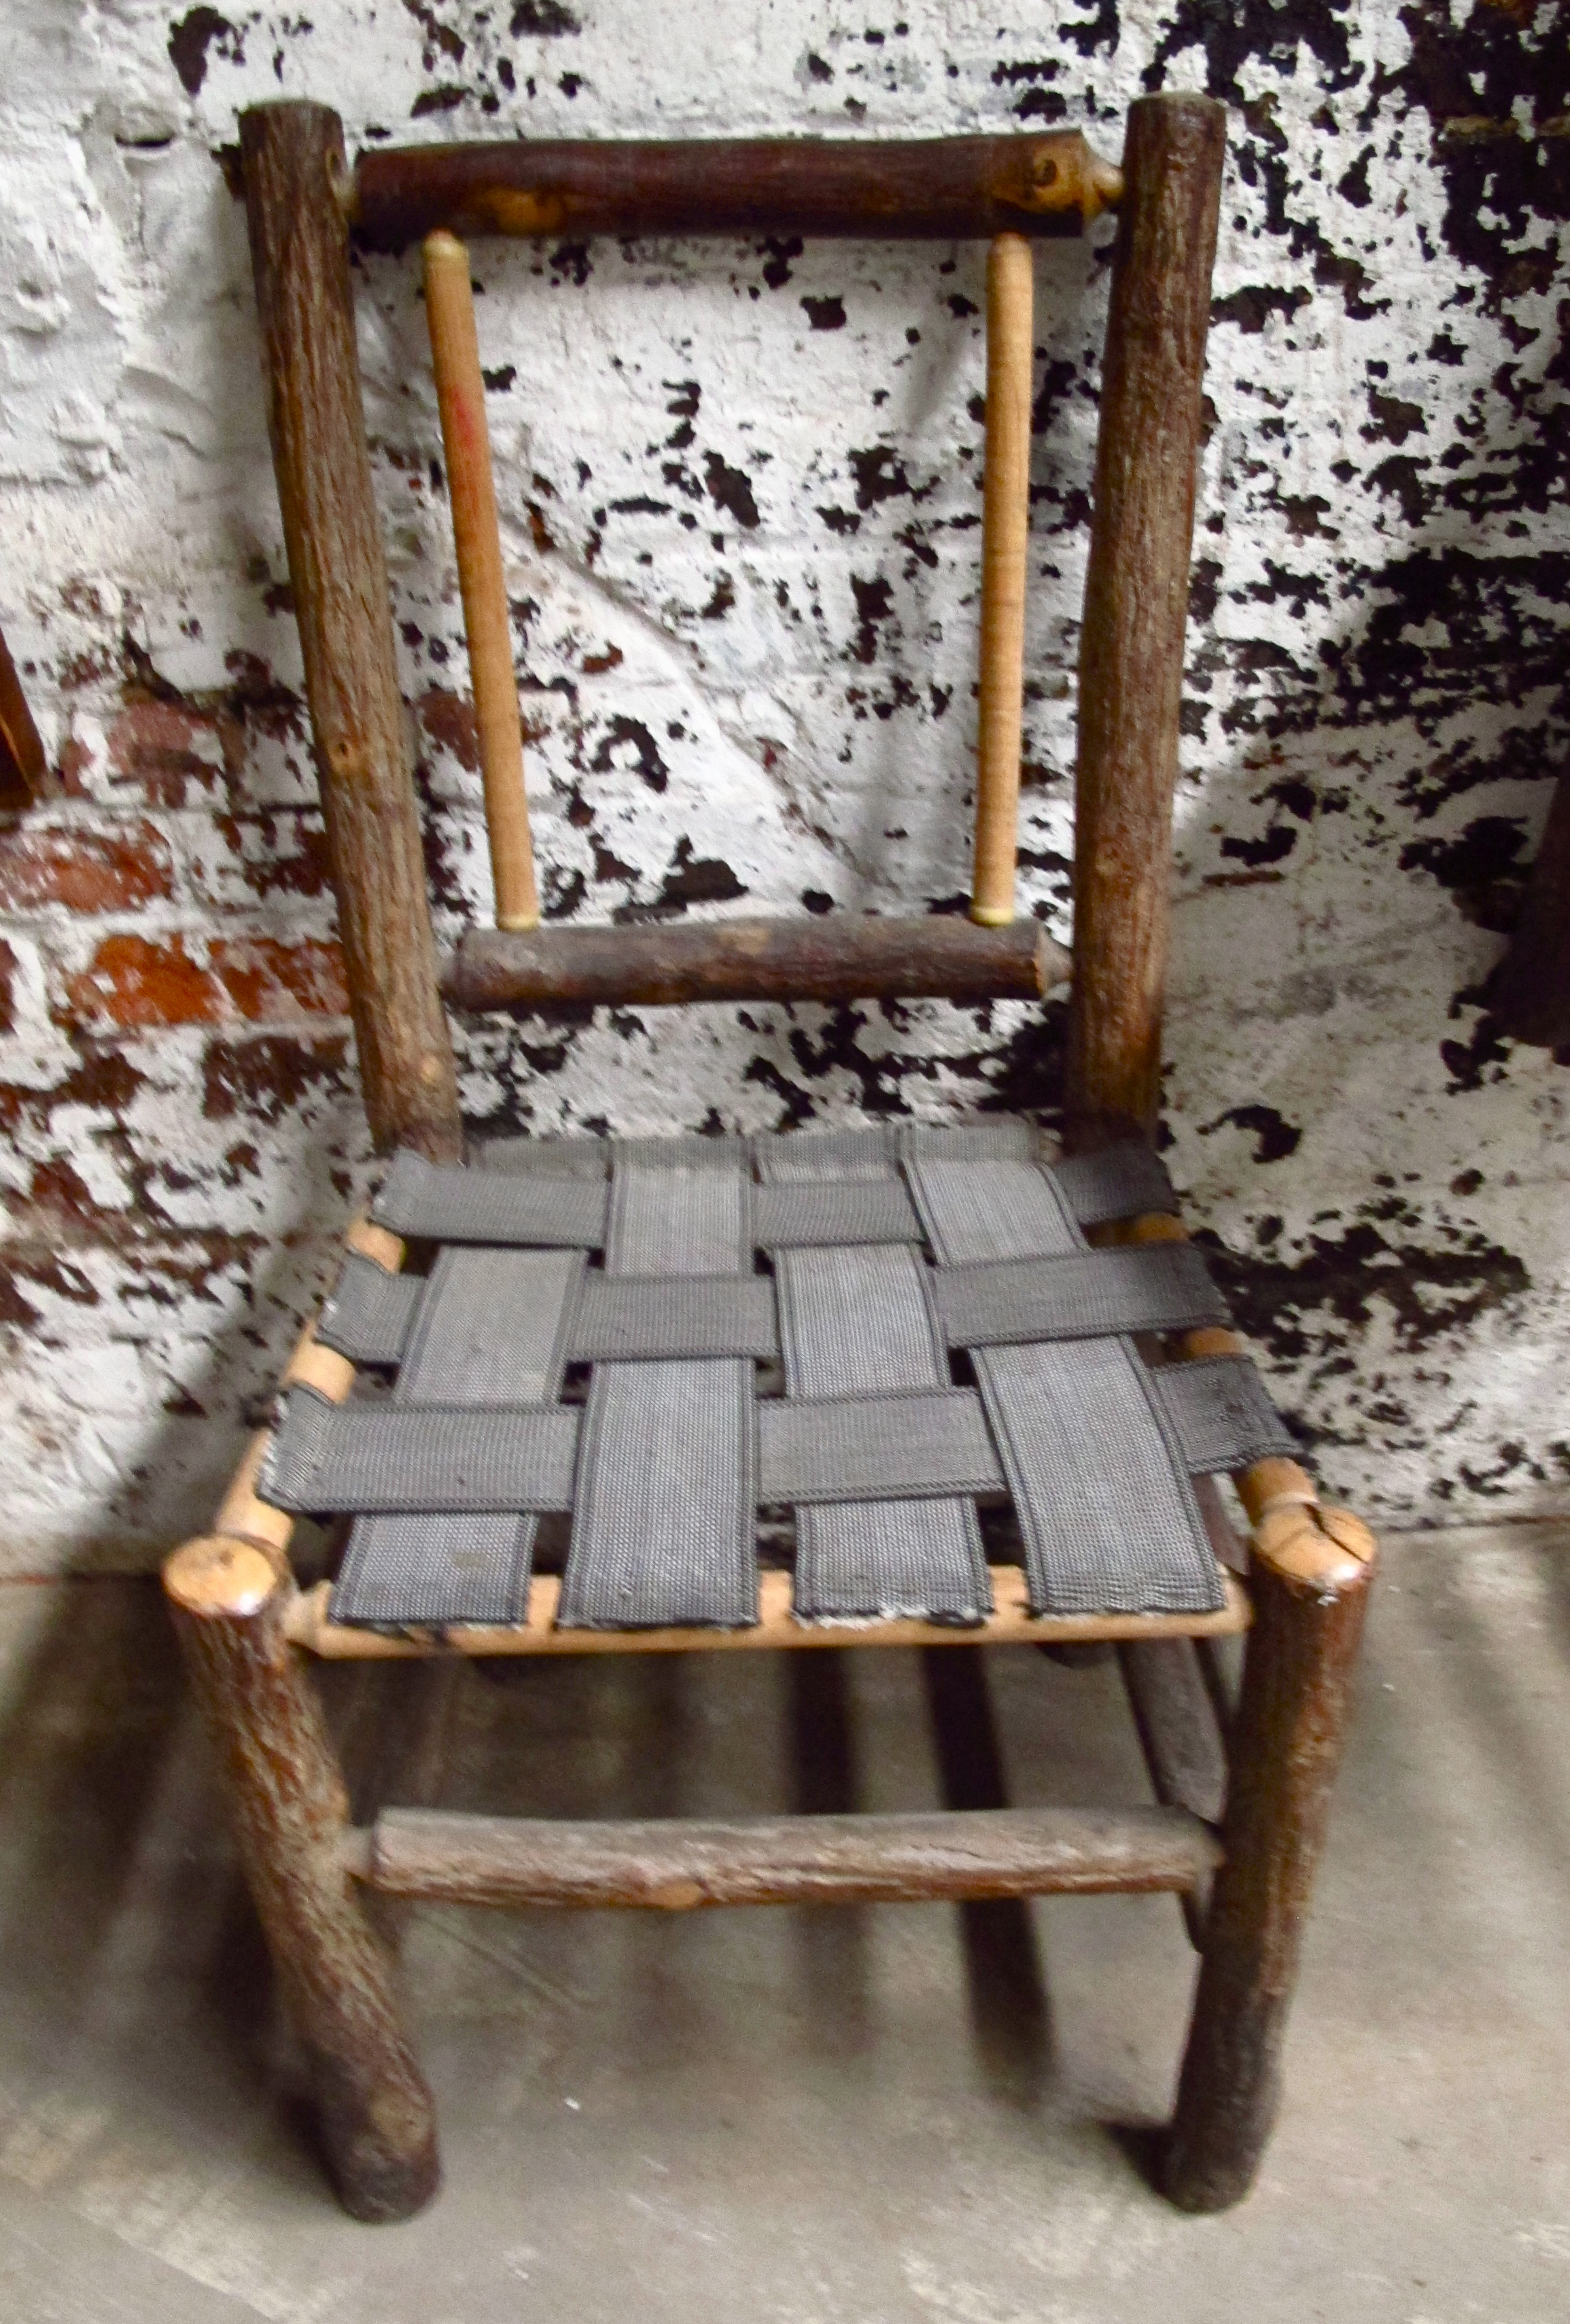 Gretel Weave Seat Wood Chair (Hansel and Gretel Set) $30